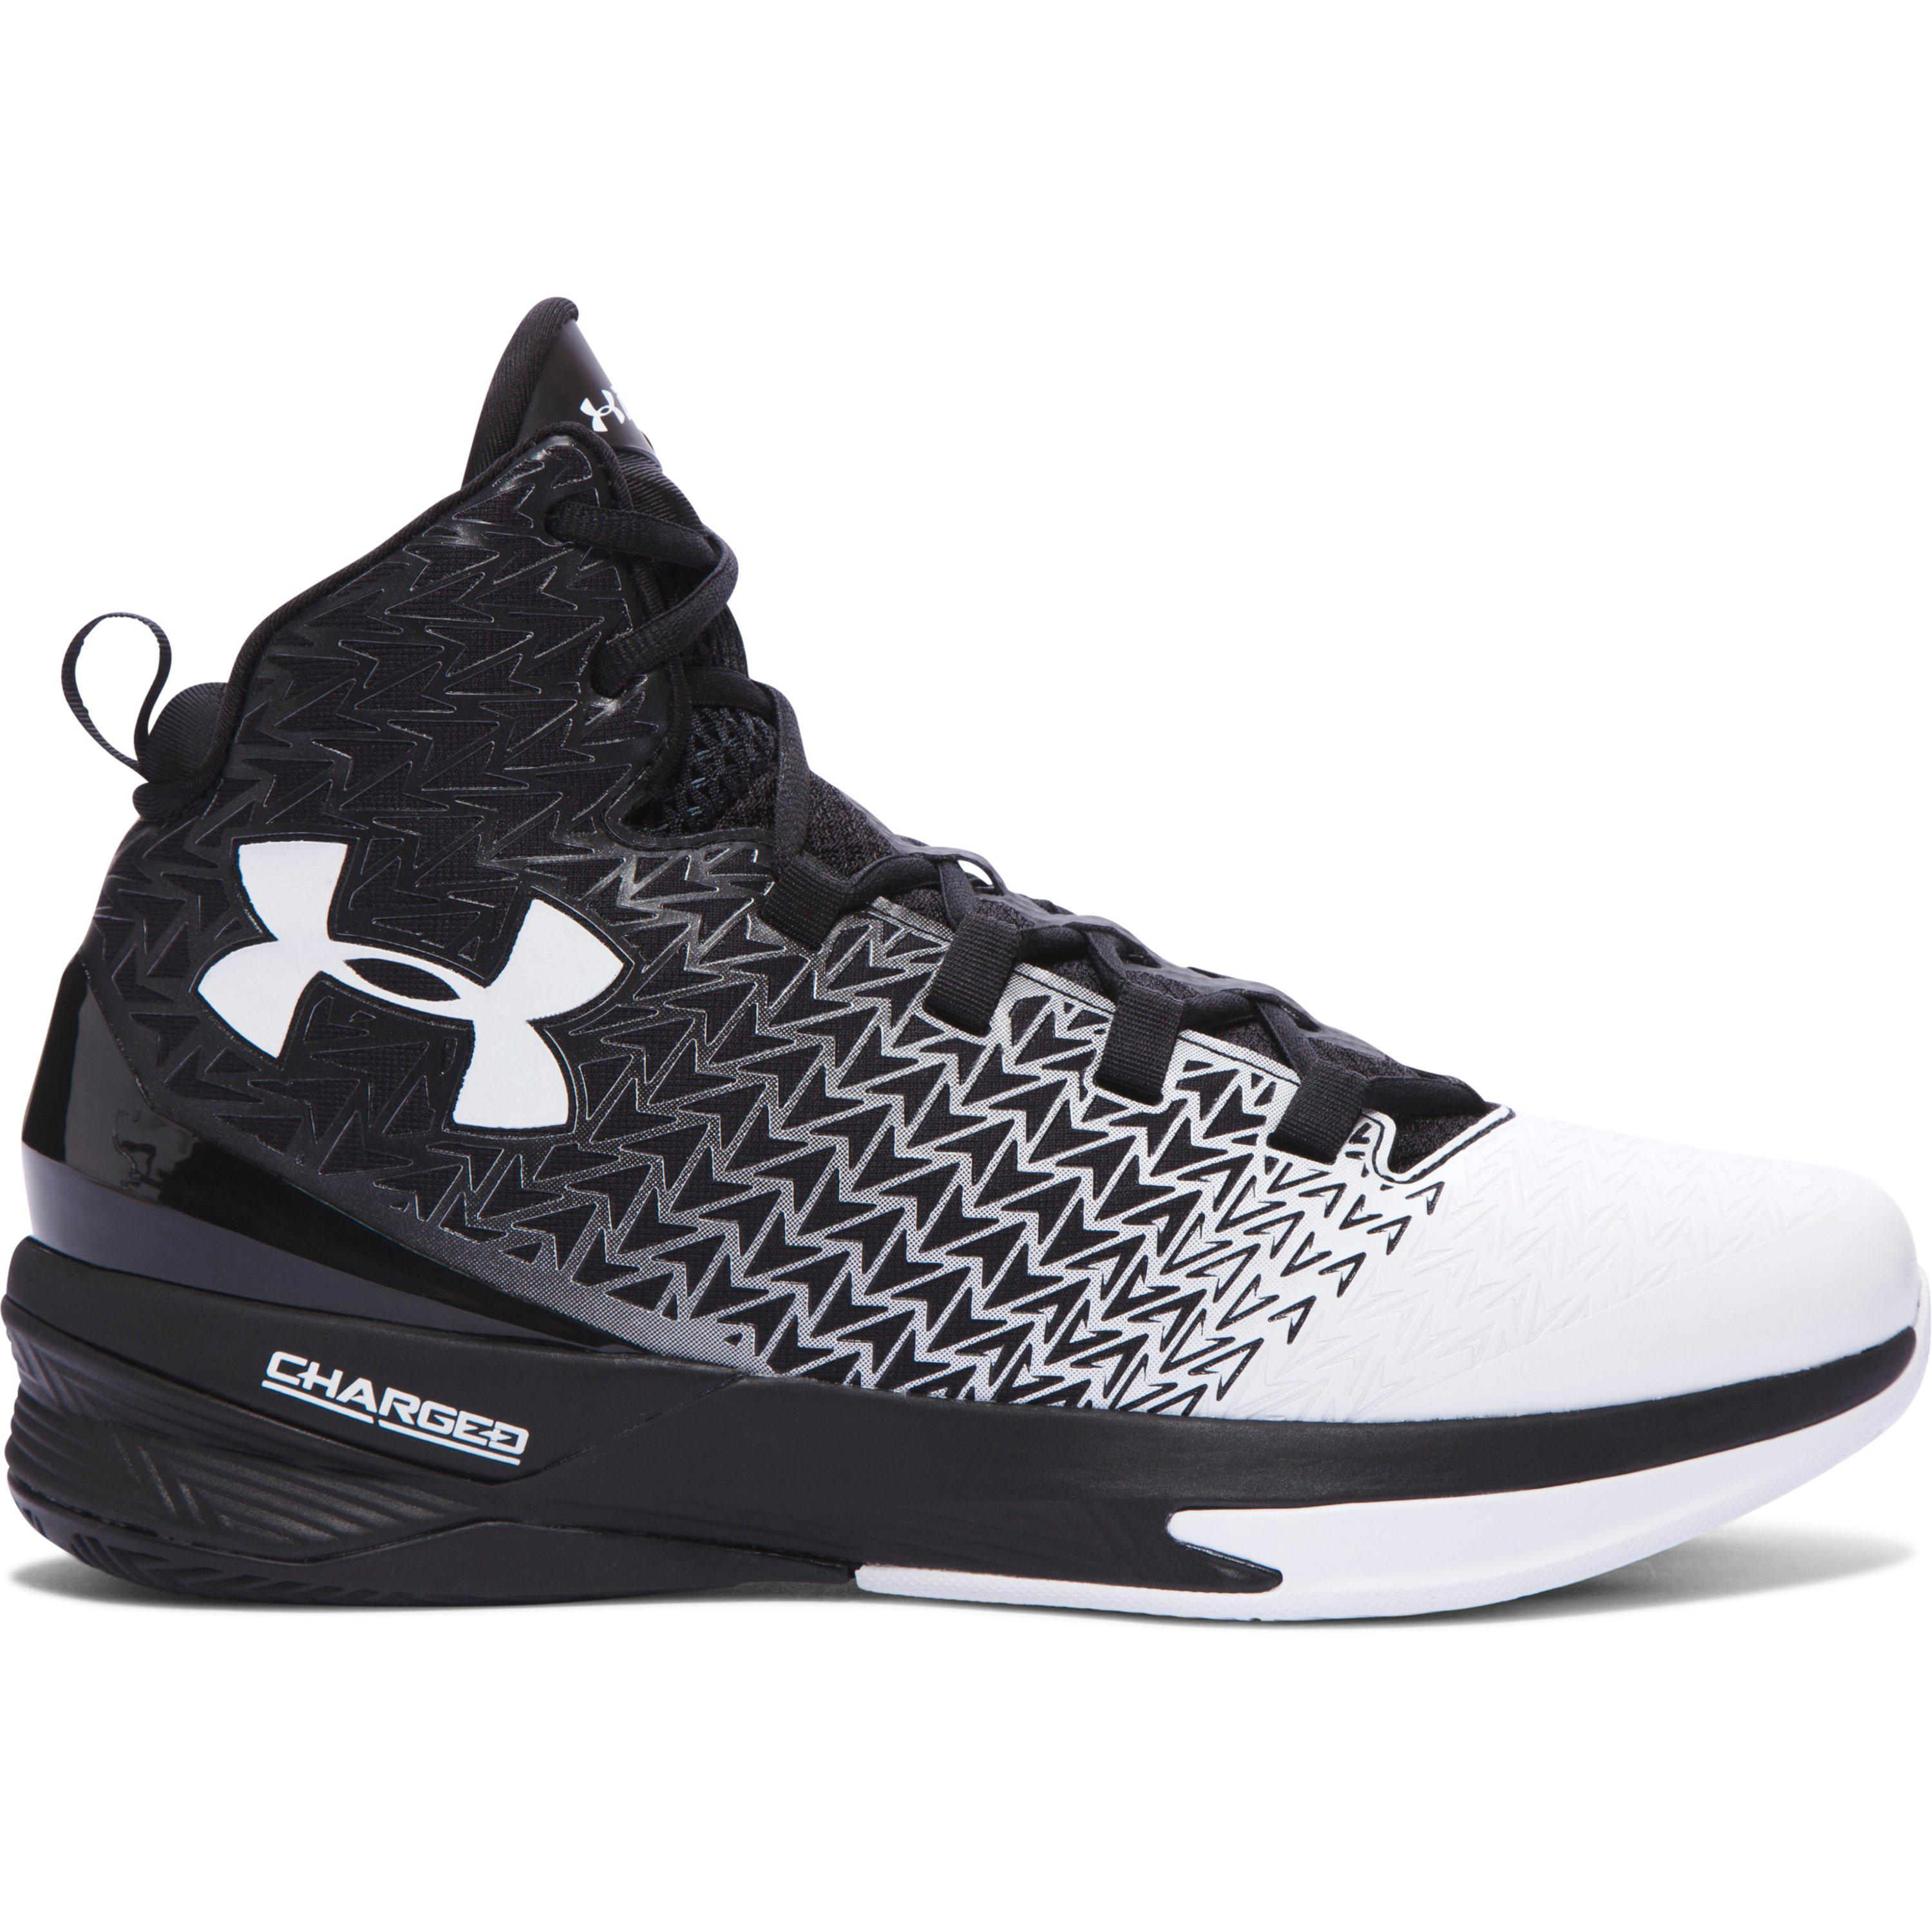 Old Model Under Armour Golf Shoes